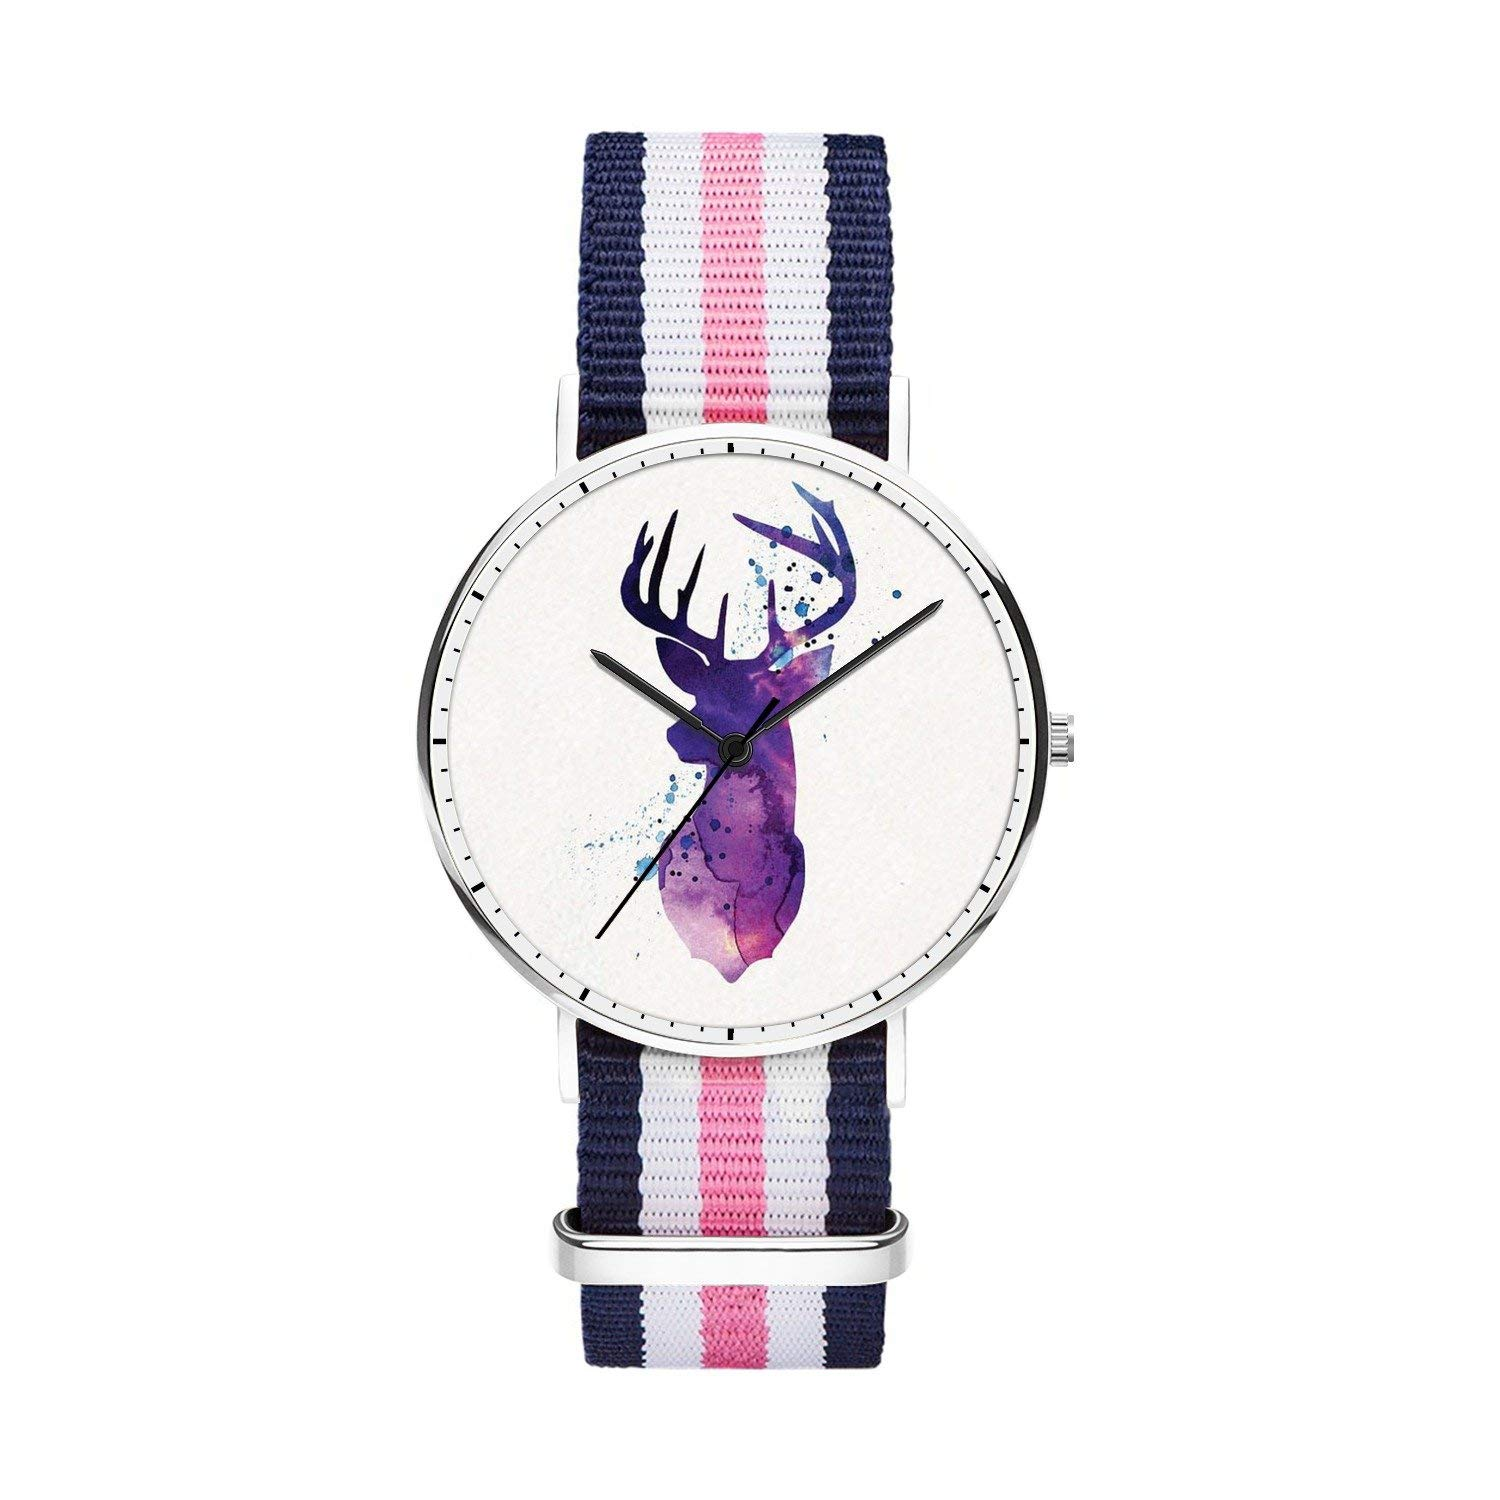 FELOOWSE Girls Watches, Women Watches, Sliver Slim Minimalist Imported Japanese Quartz Practical Waterproof Unique Personalized Youth Fashion Design Cute Watches for Women.- Deer